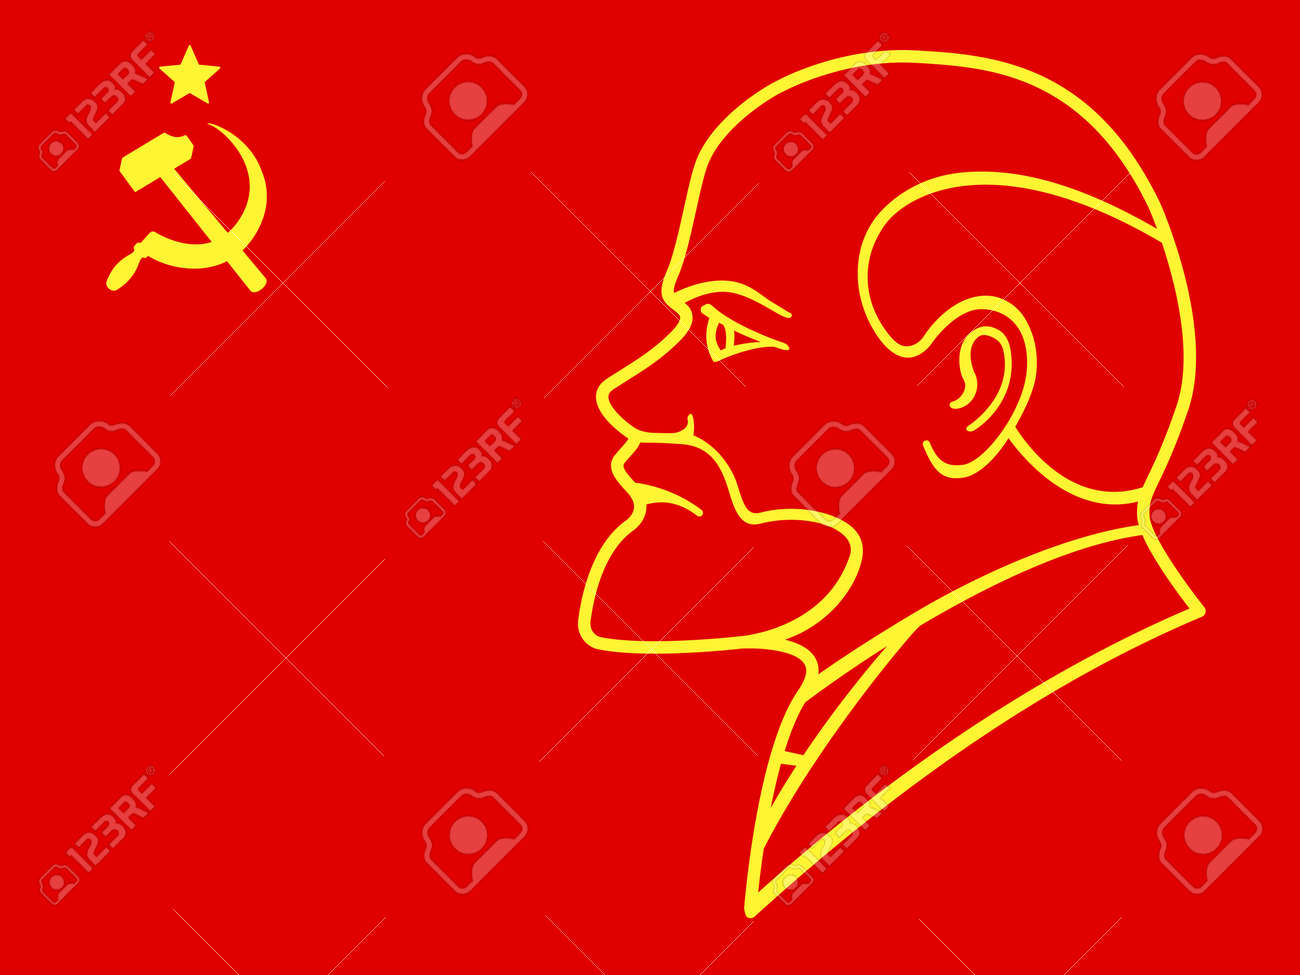 Illustration of the lenin portrait on ussr flag royalty free illustration of the lenin portrait on ussr flag stock vector 74304594 biocorpaavc